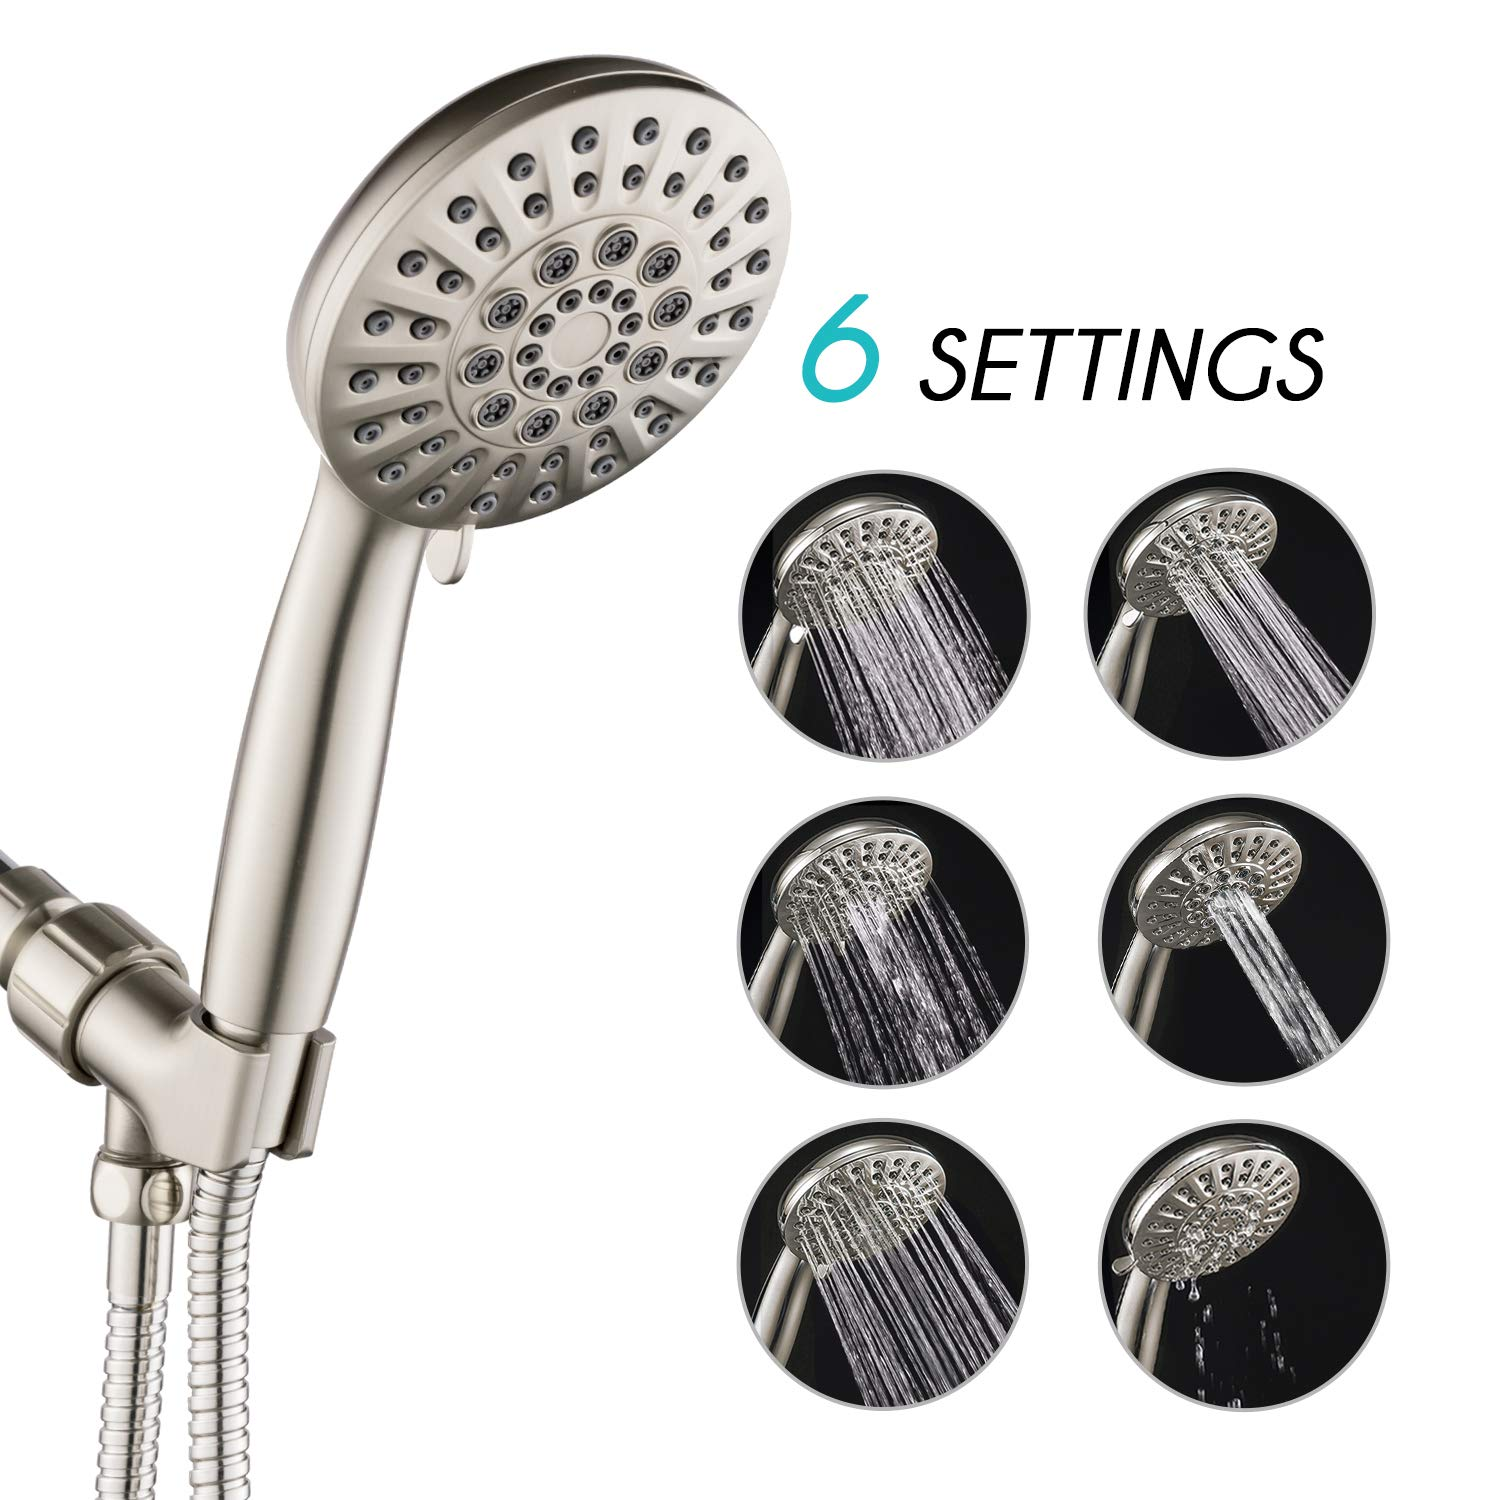 ANZA 6 Spray Settings Hand Held Shower Head with Hose, 4.3'' Water Saving Massage Rain High Pressure Handheld Shower Head, Angle-Adjustable Bracket, 5 Ft Stainless Steel Hose, Luxury Brushed Nickel